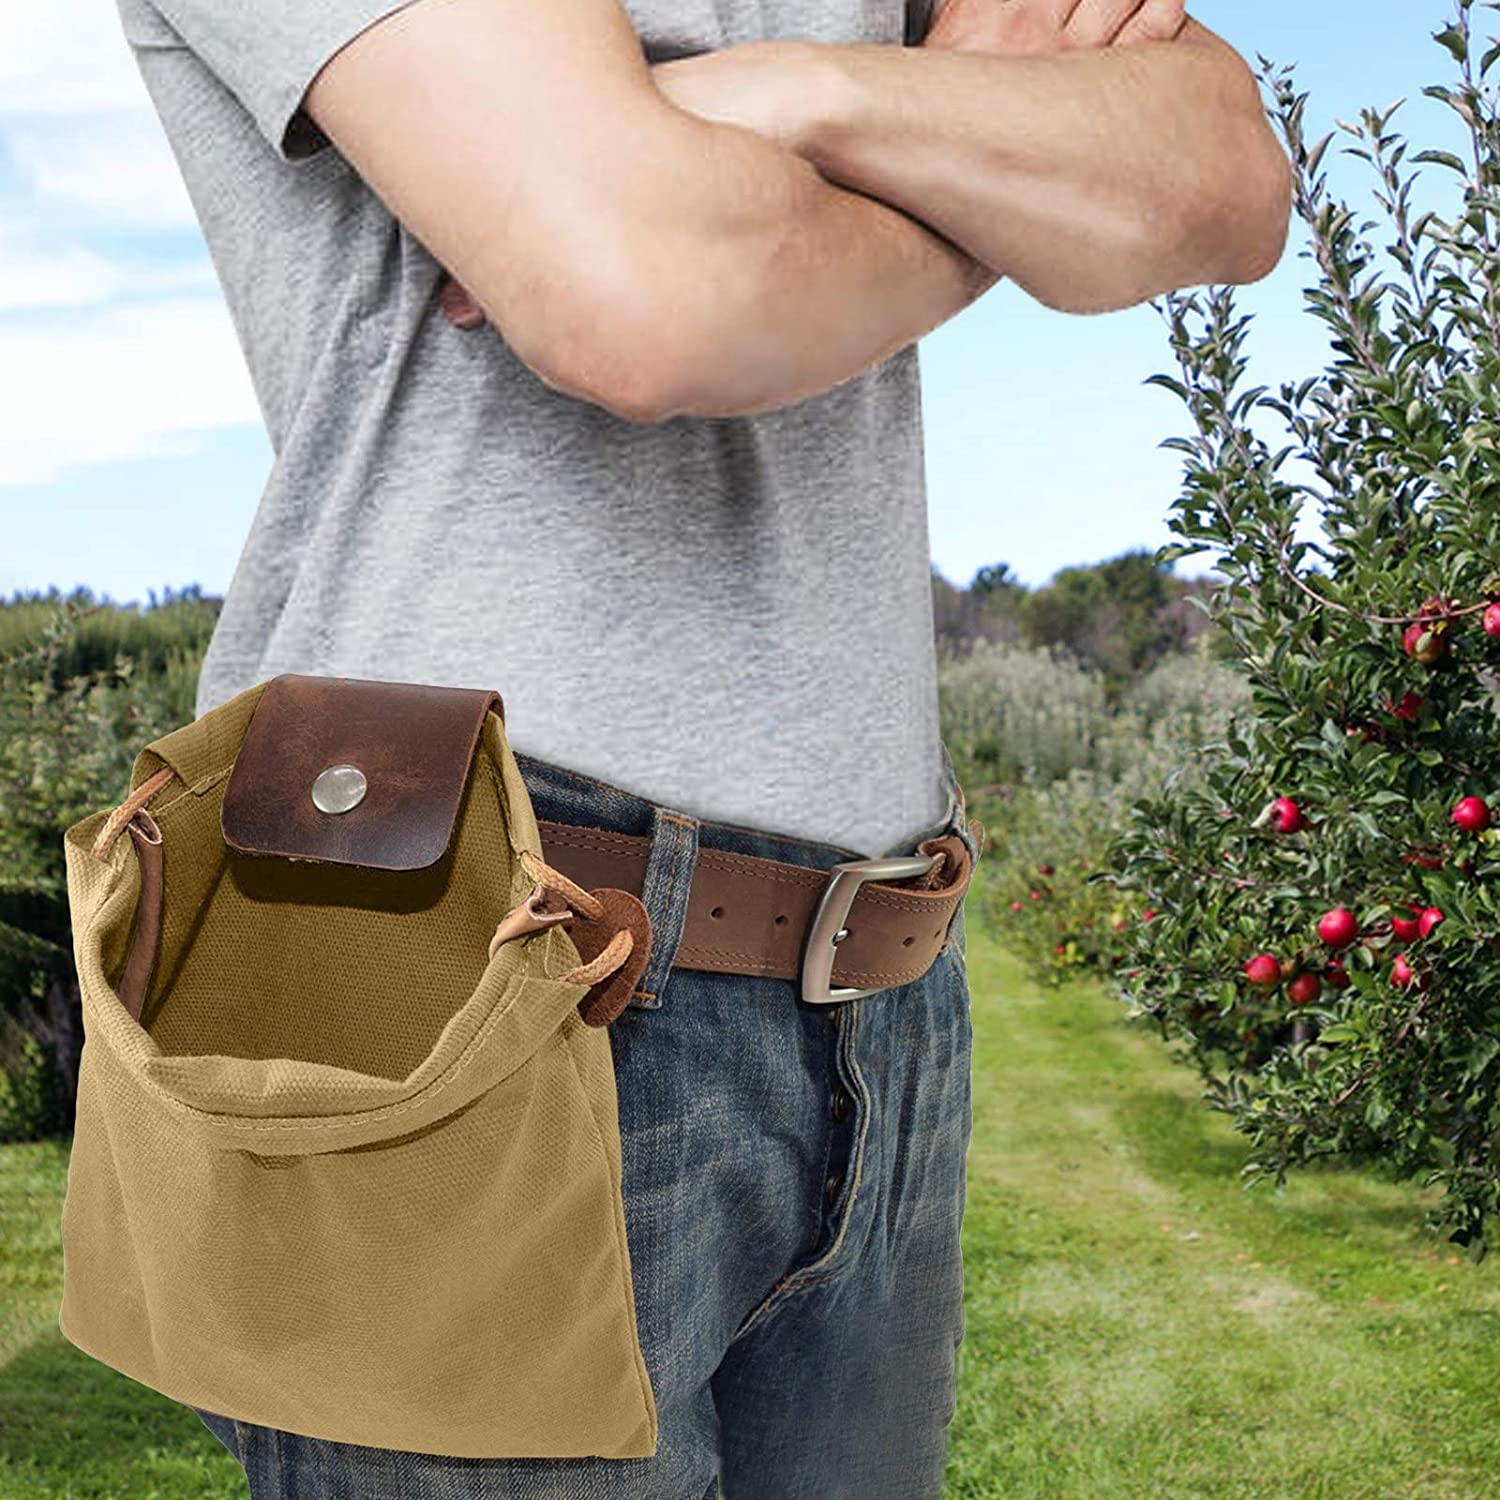 Foldable Canvas Foraging Bag, Retro Style Versatile Canvas Pouch with Leather Cover and Buckle, Tool Pouch and Canvas Bag with Drawstring for Outdoor Camping.